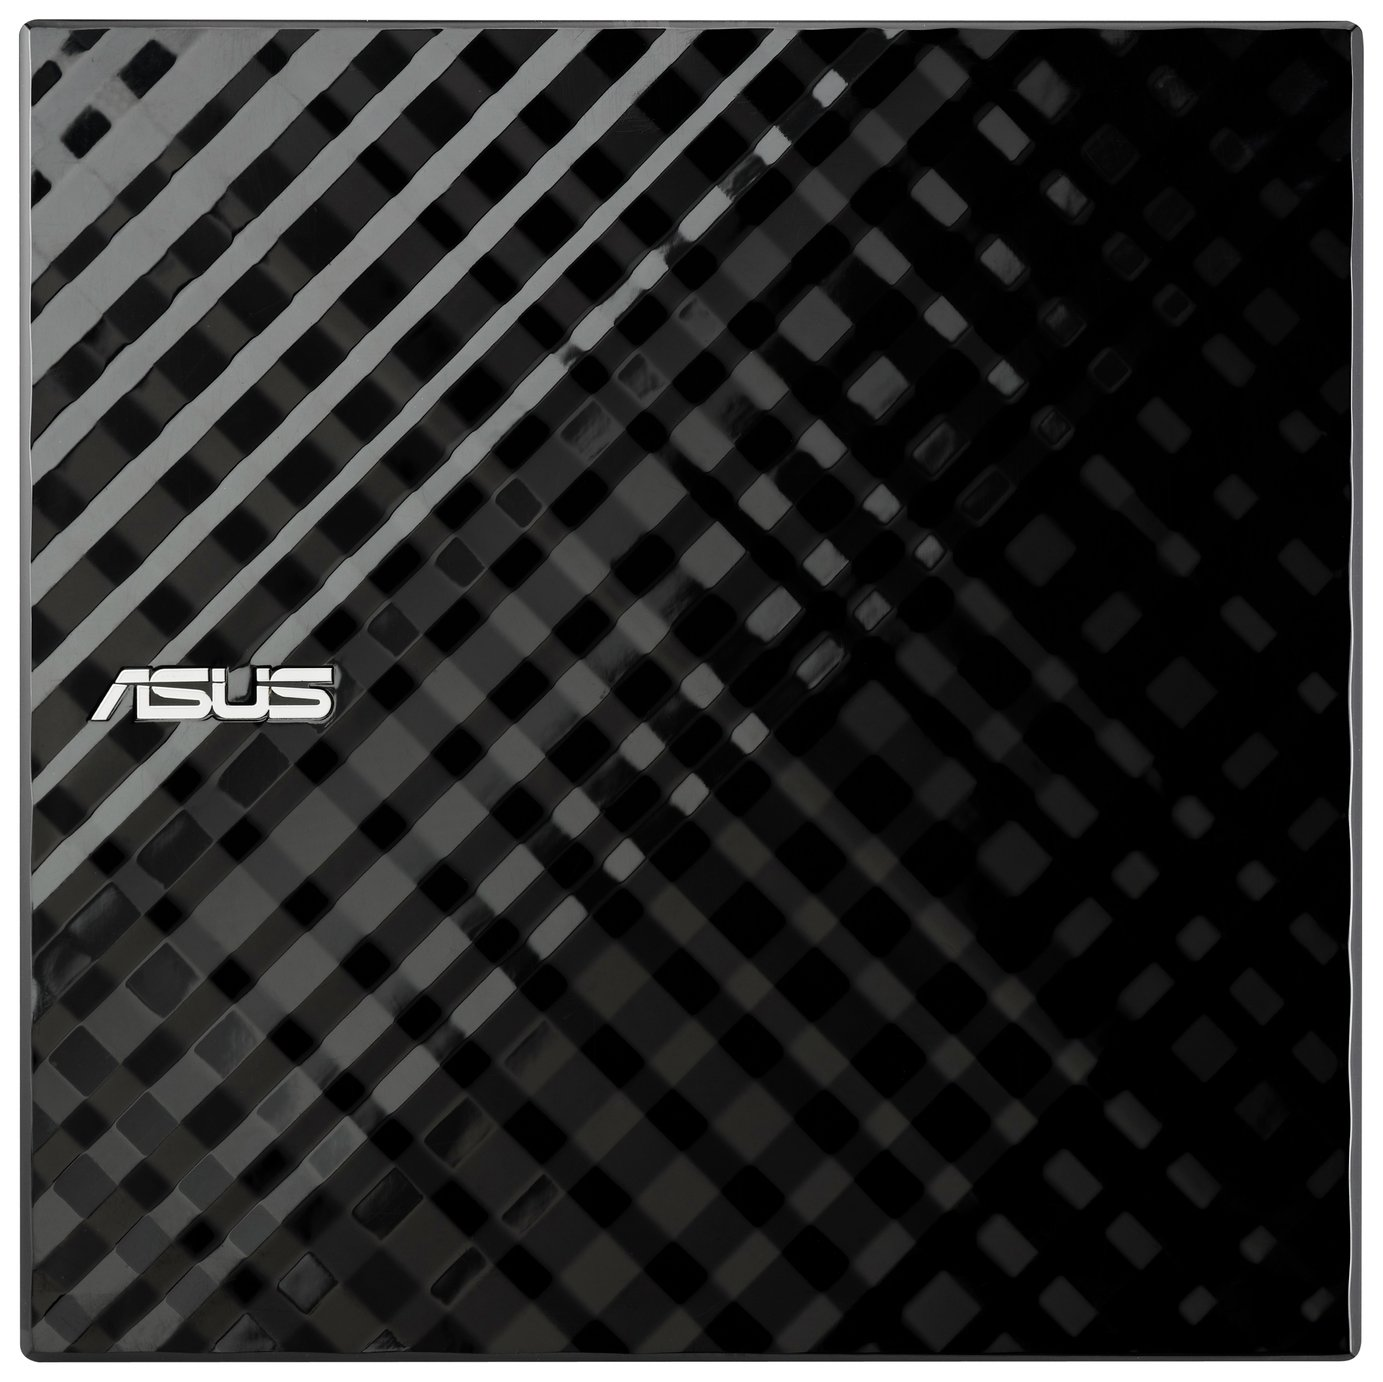 Asus Slim External DVD Writer - Black